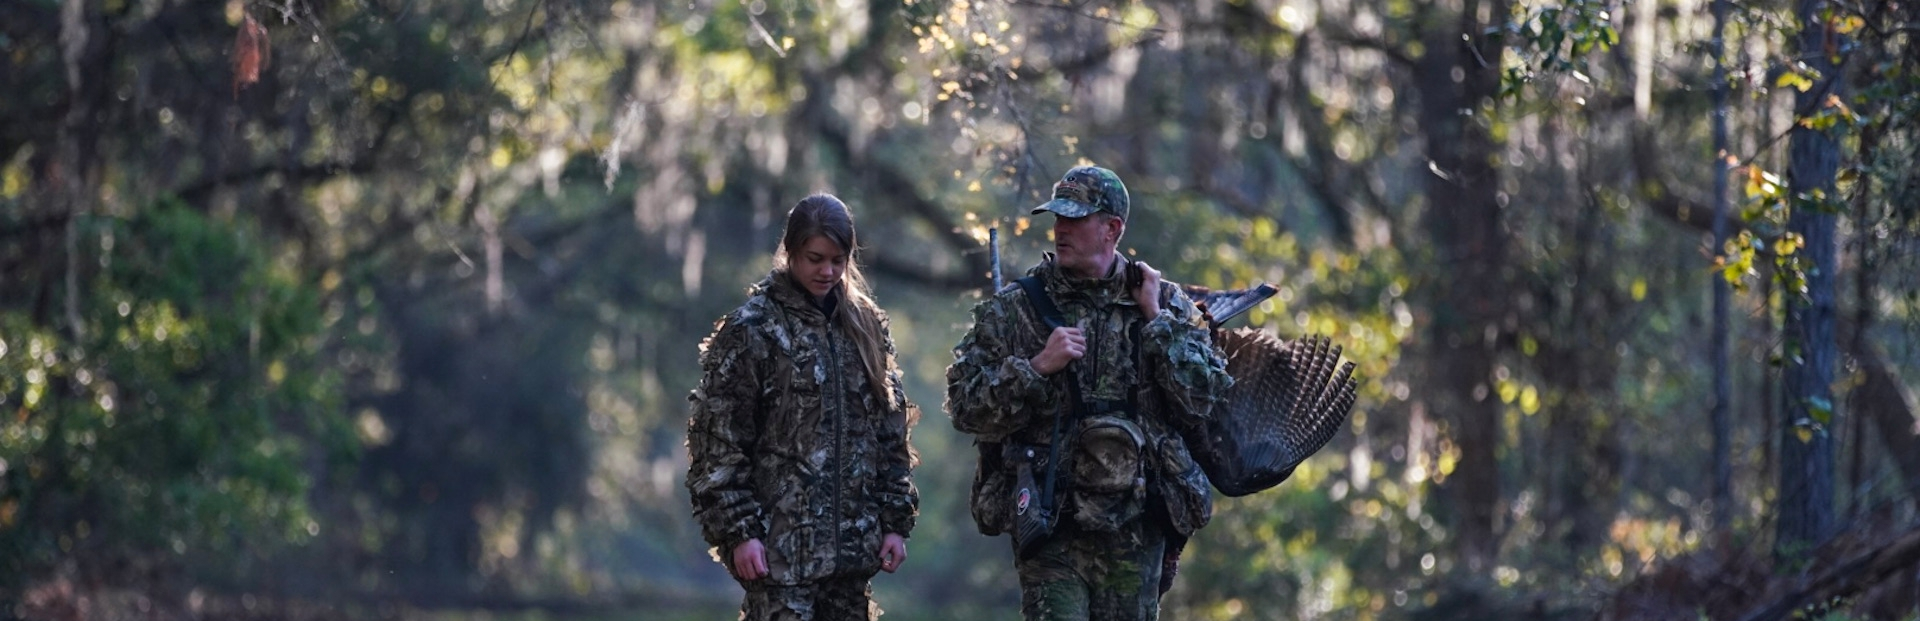 Osceola Turkey Hunting Outfitter